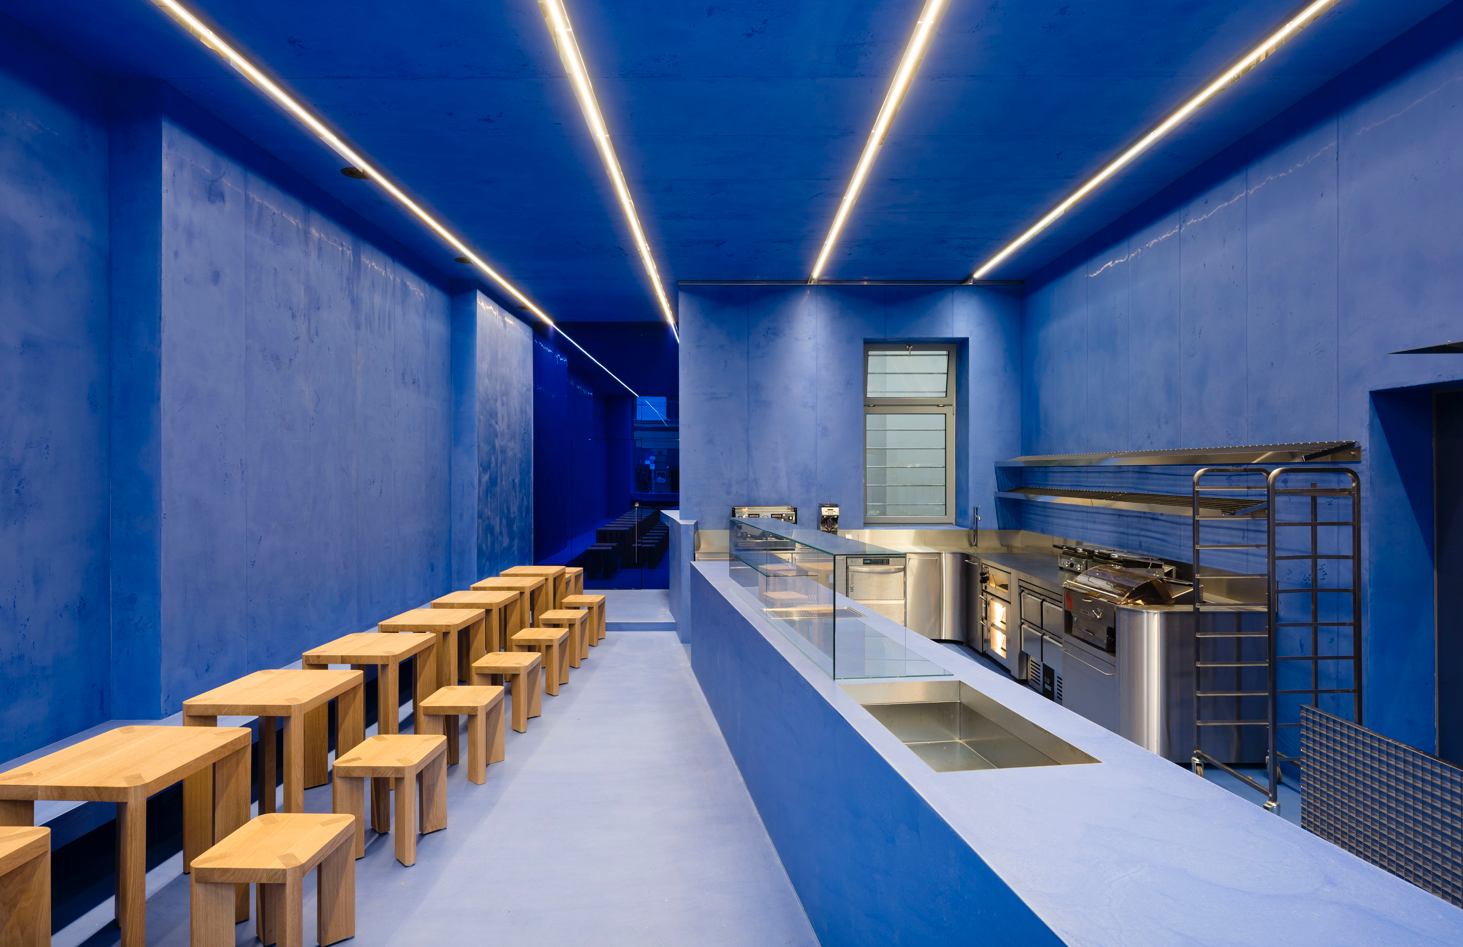 Ultramarine interiors are inspired by the paintings of a Dutch master